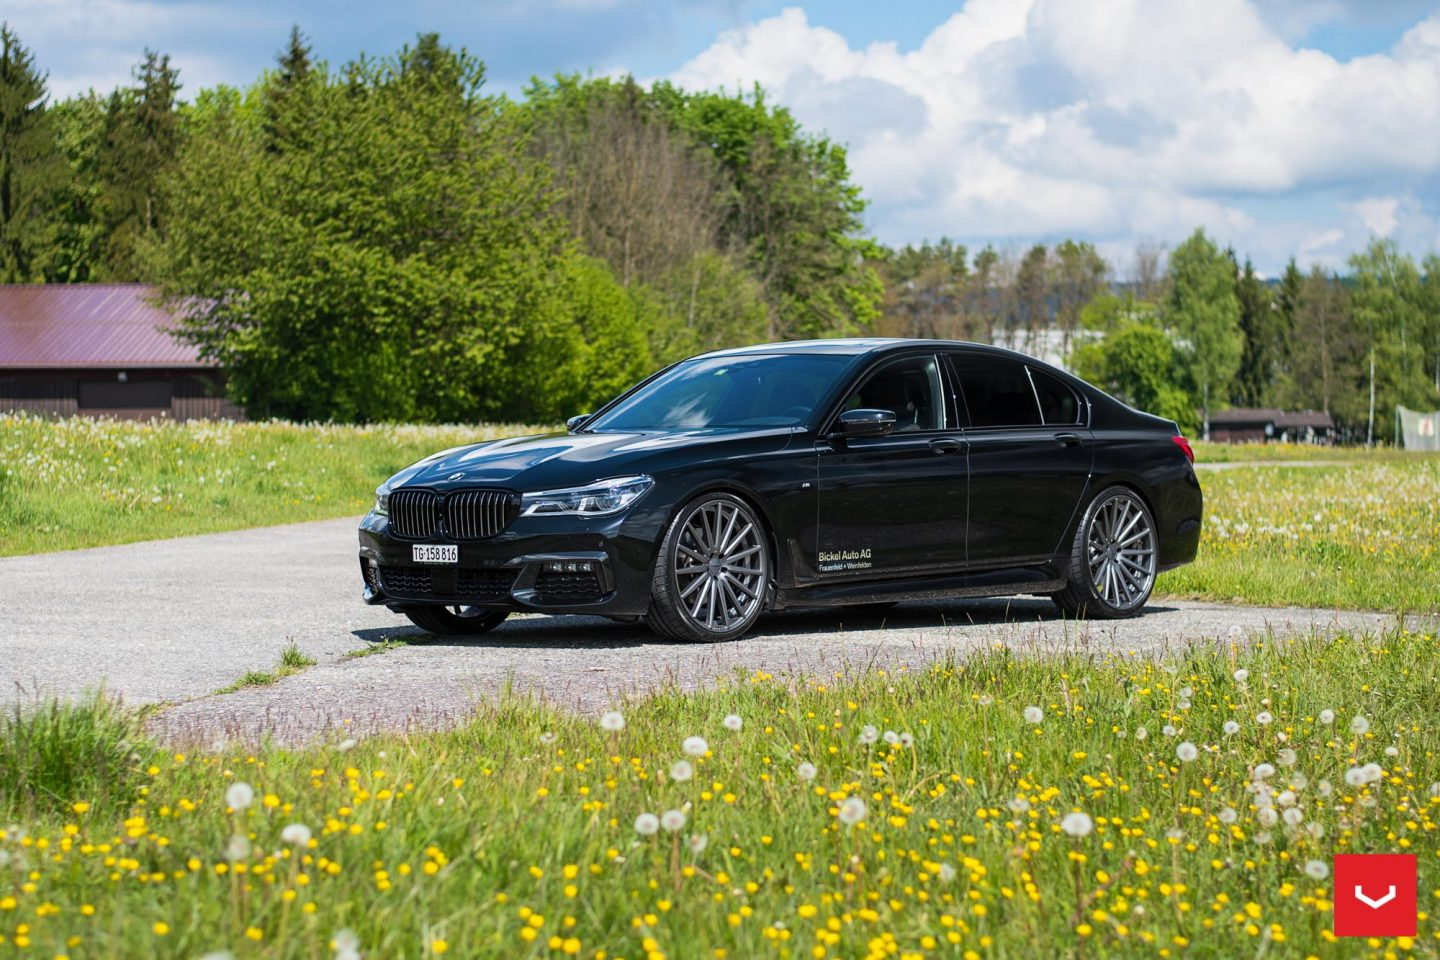 new 2017 bmw 7 series get a whole new look with some vossen wheels vfs 2 need 4 speed motorsports. Black Bedroom Furniture Sets. Home Design Ideas